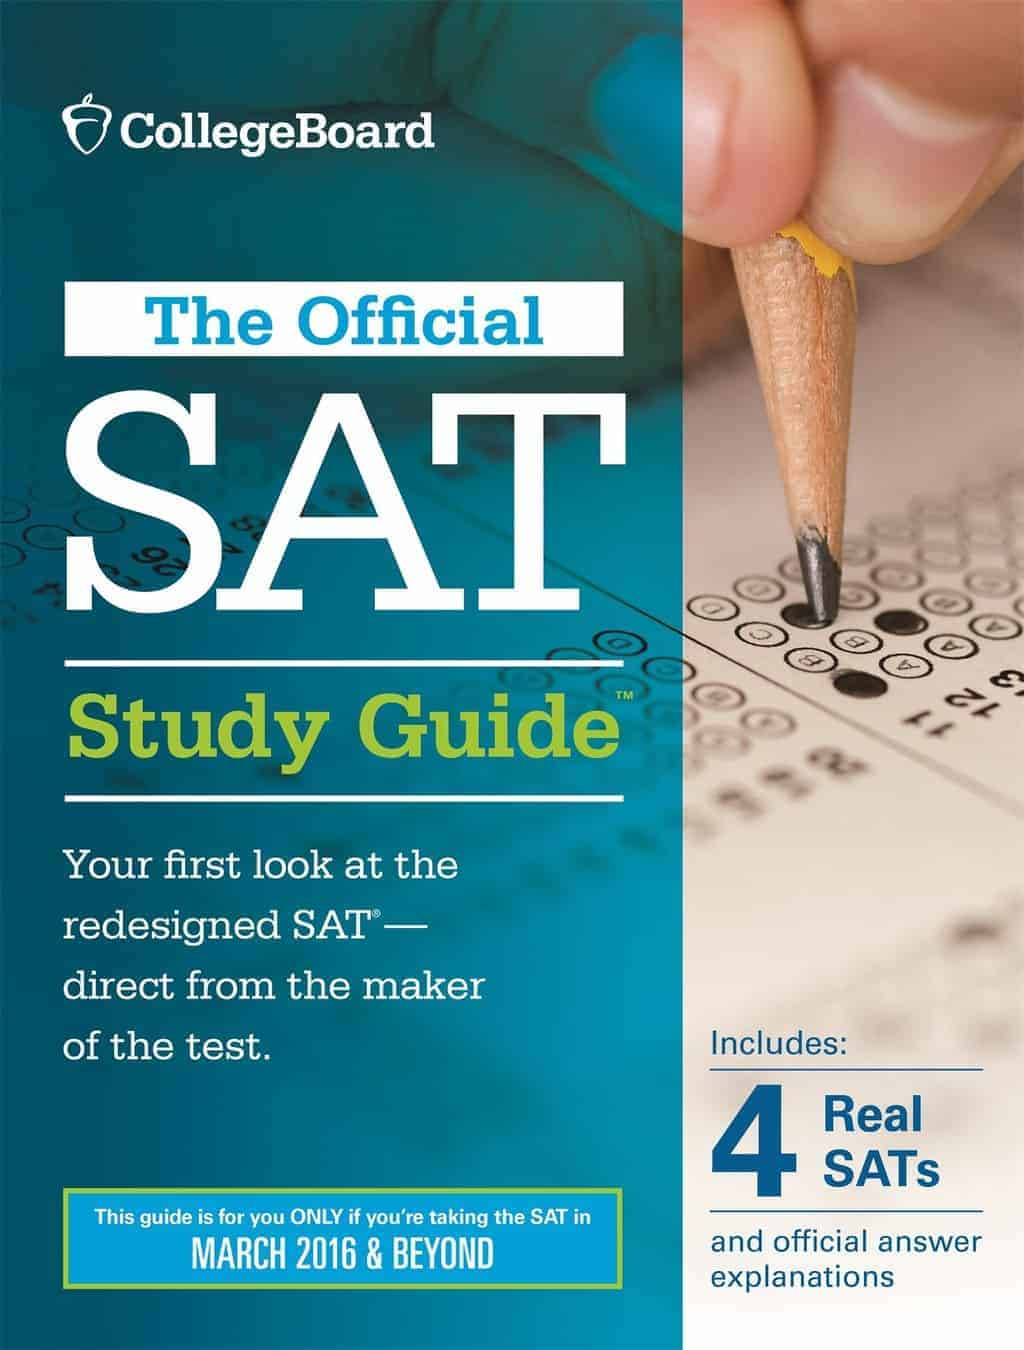 The 2016 Sat A Tutor's Impressions • Love The Sat Test Prep. Temp Rite Heating And Cooling. International Helath Insurance. Pet Waste Disposal Bags Day Trading Platforms. Find Device By Mac Address Locksmith Exton Pa. How Does An Air Conditioner Compressor Work. Missouri Highlands Health Care. Electricians Vancouver Wa Average Cost Braces. Merit Janitorial Supply Best Spellcaster Deck